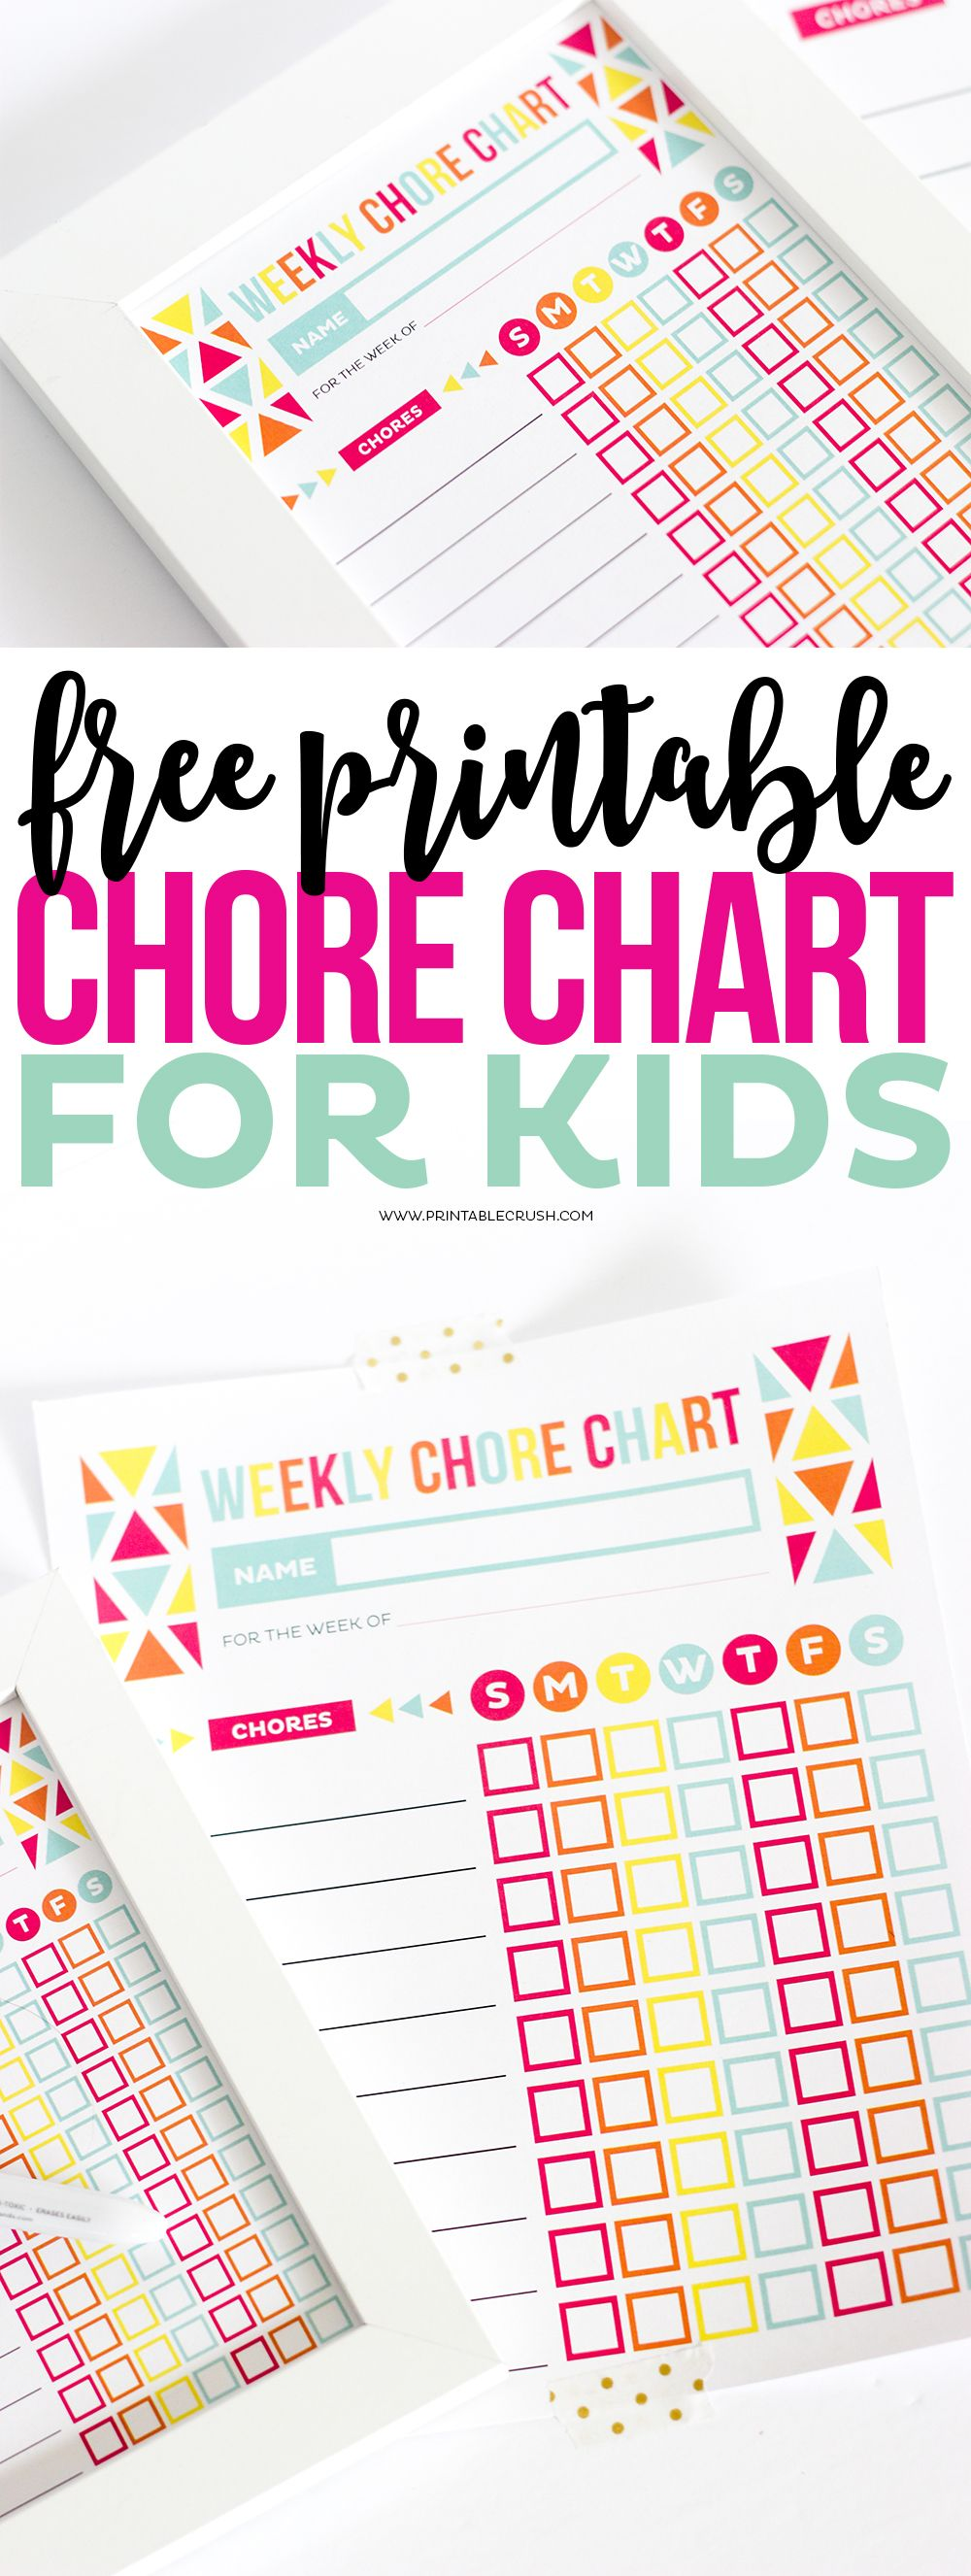 Download This Free Printable Chore Chart For Kids To Keep Track Of